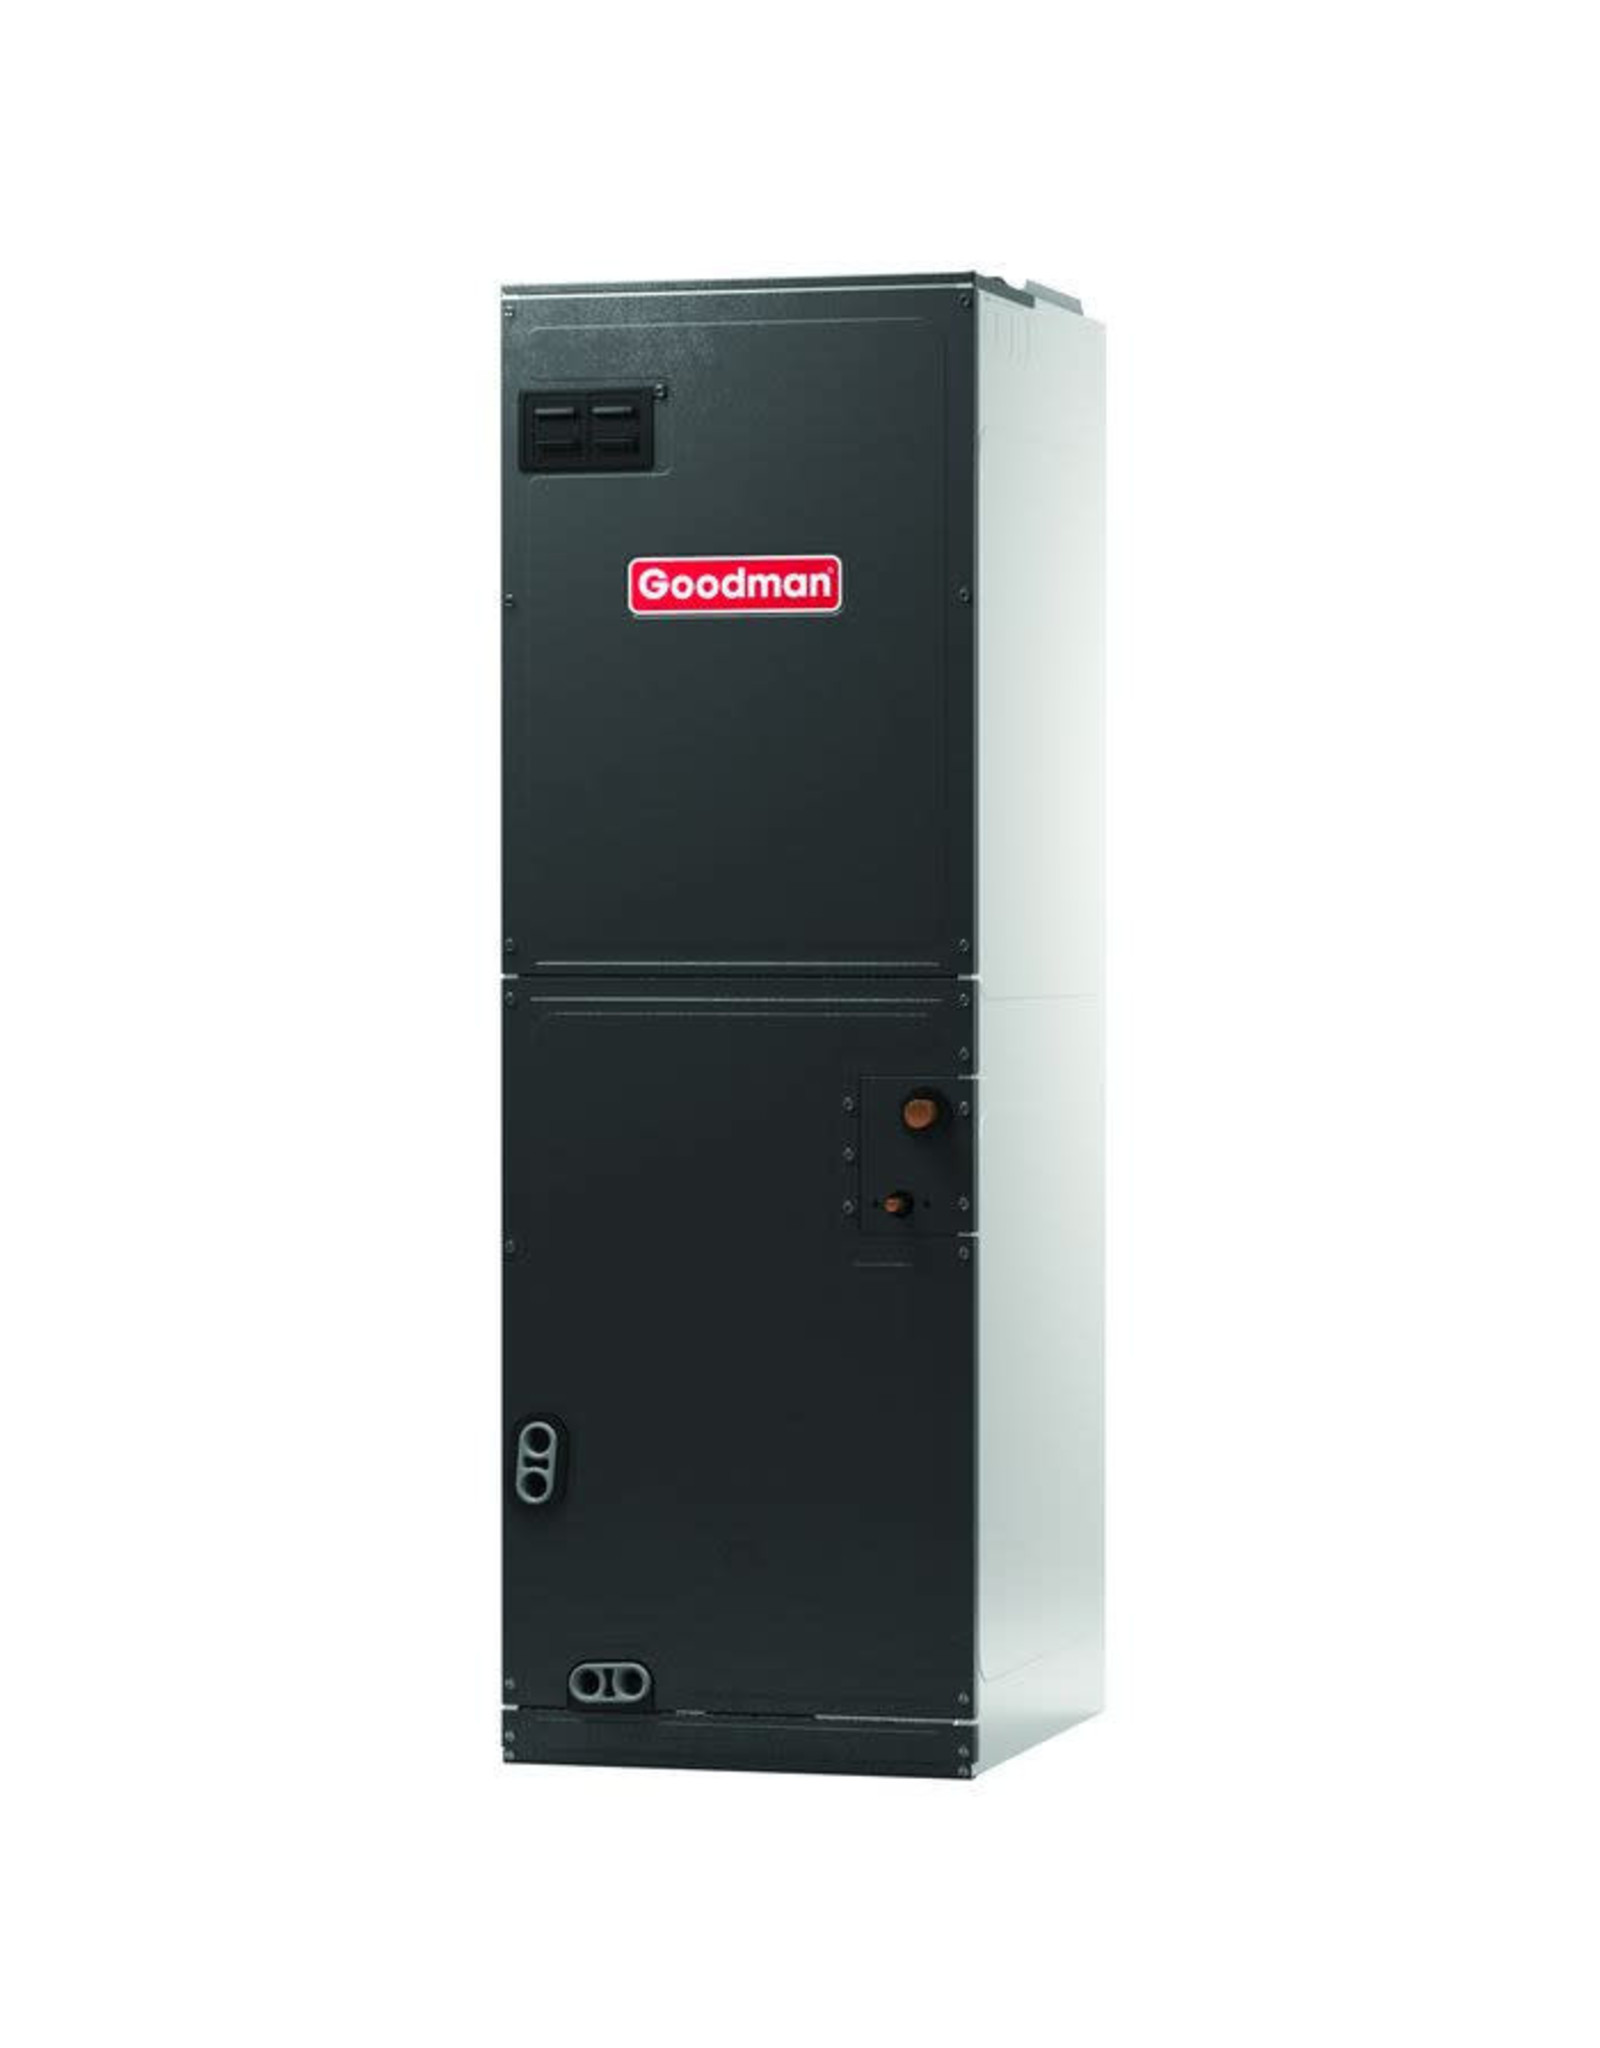 Goodman Split System Convertible AHU 14SEER Applicable to 3.5 - 4 Tons